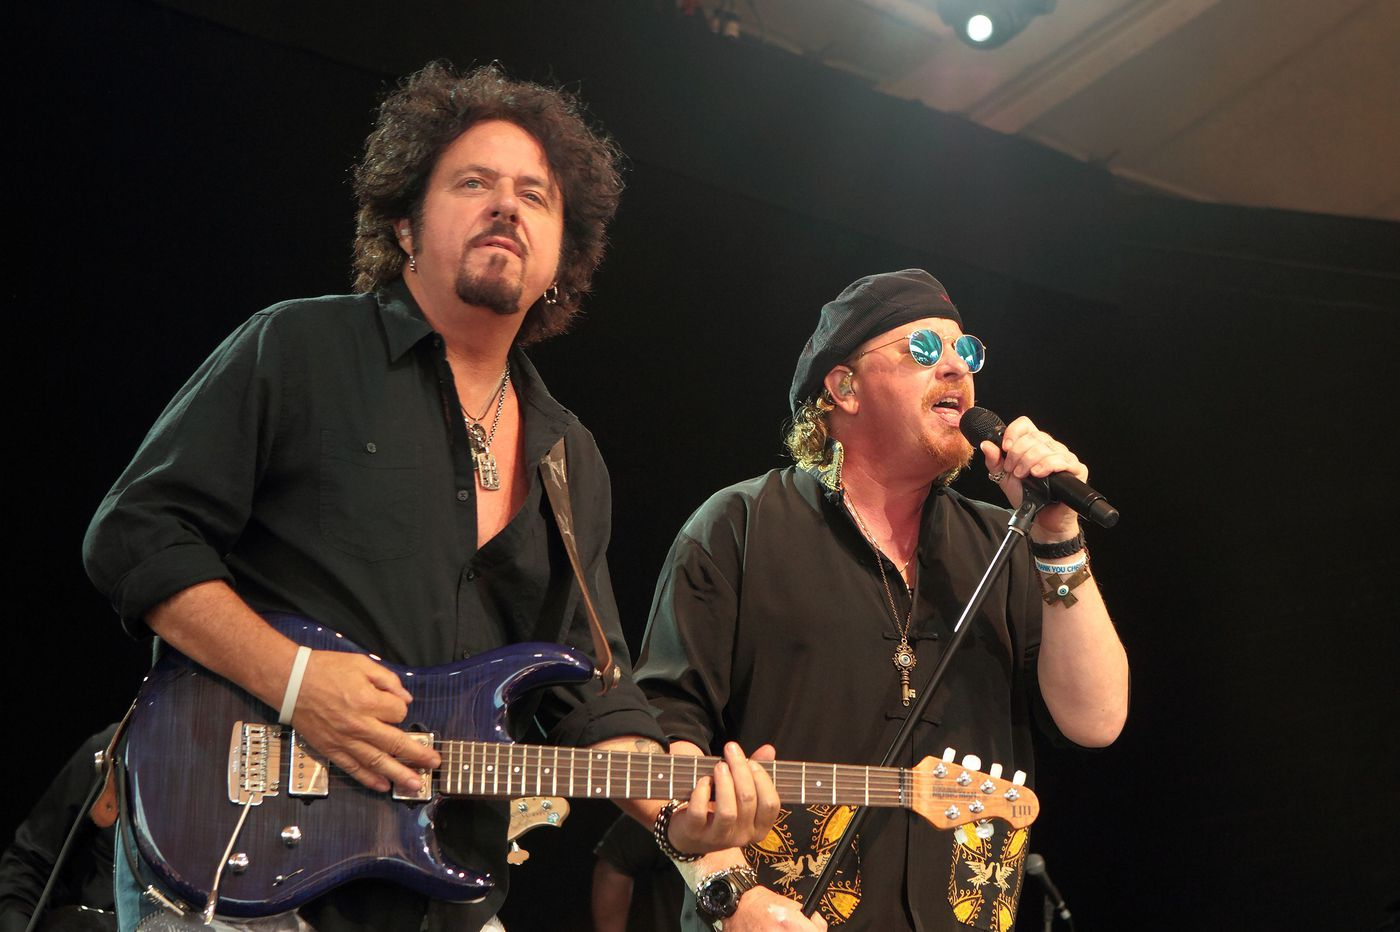 Toto to go on hiatus after final 40th anniversary show in Philly this weekend